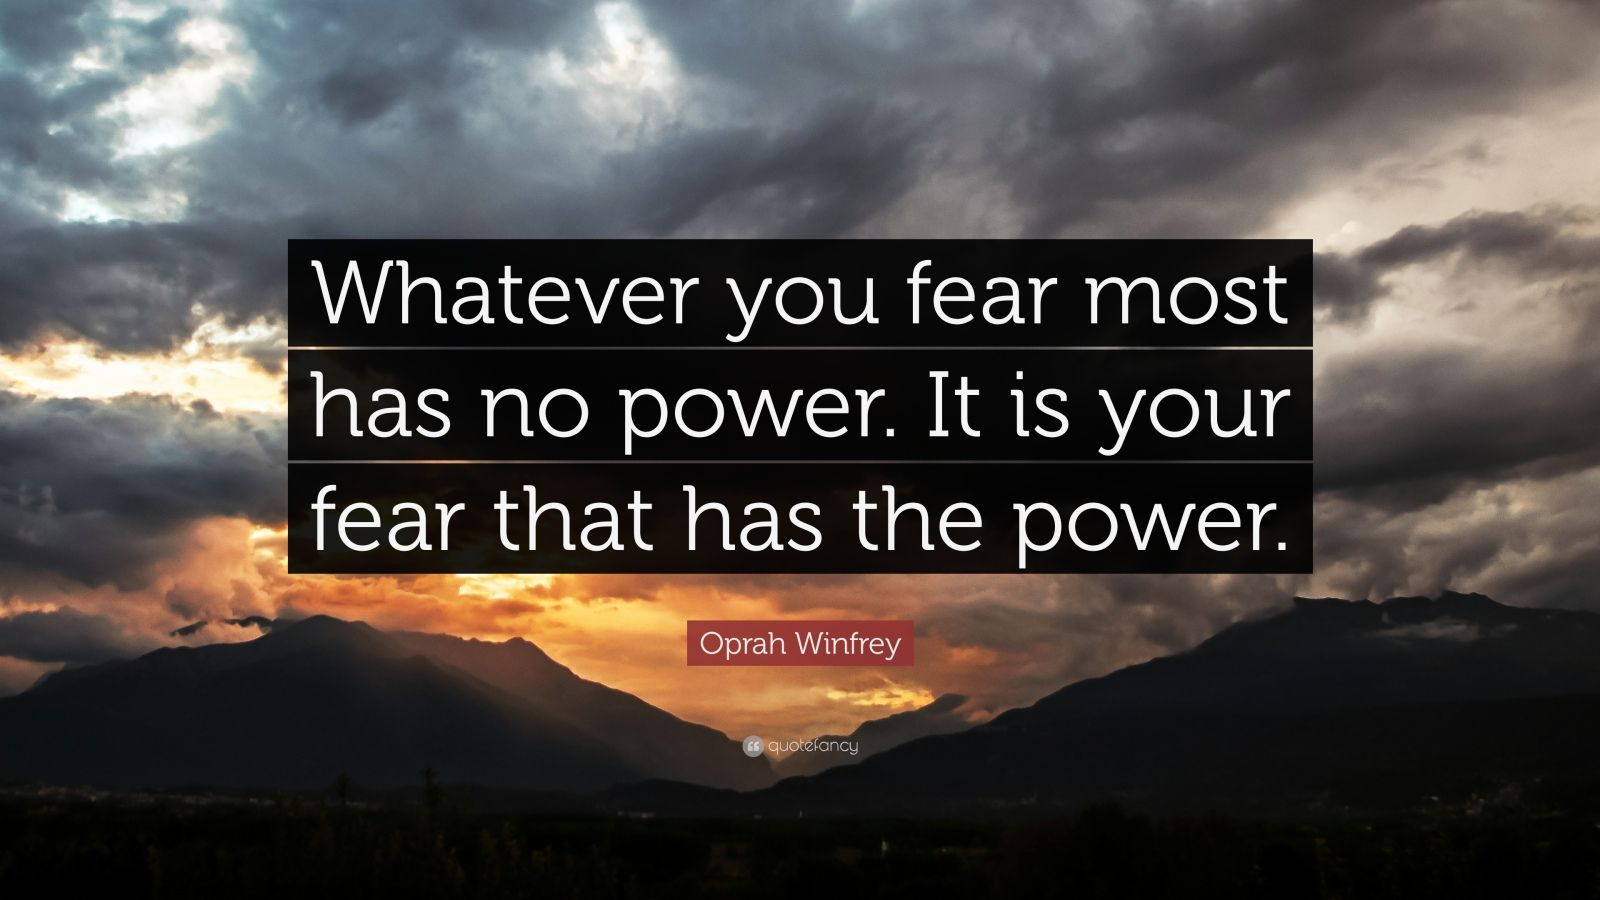 """Oprah Winfrey Quote: """"Whatever you fear most has no power. It is your fear that has the power."""""""